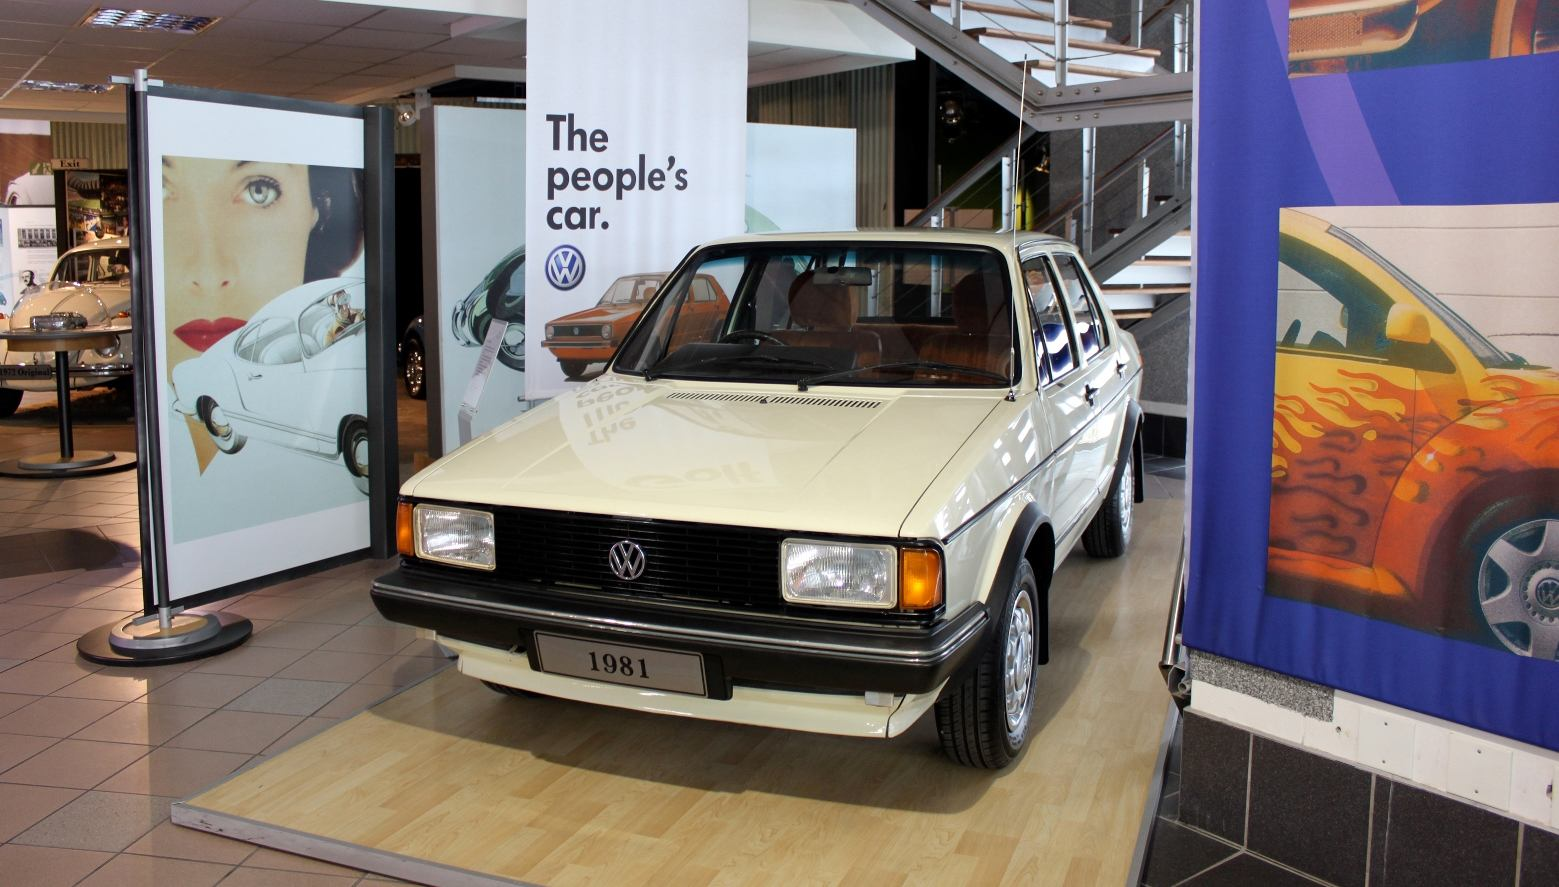 SA's Cleanest '81 Volkswagen Jetta Gets To Rest: Latest News – Surf4cars